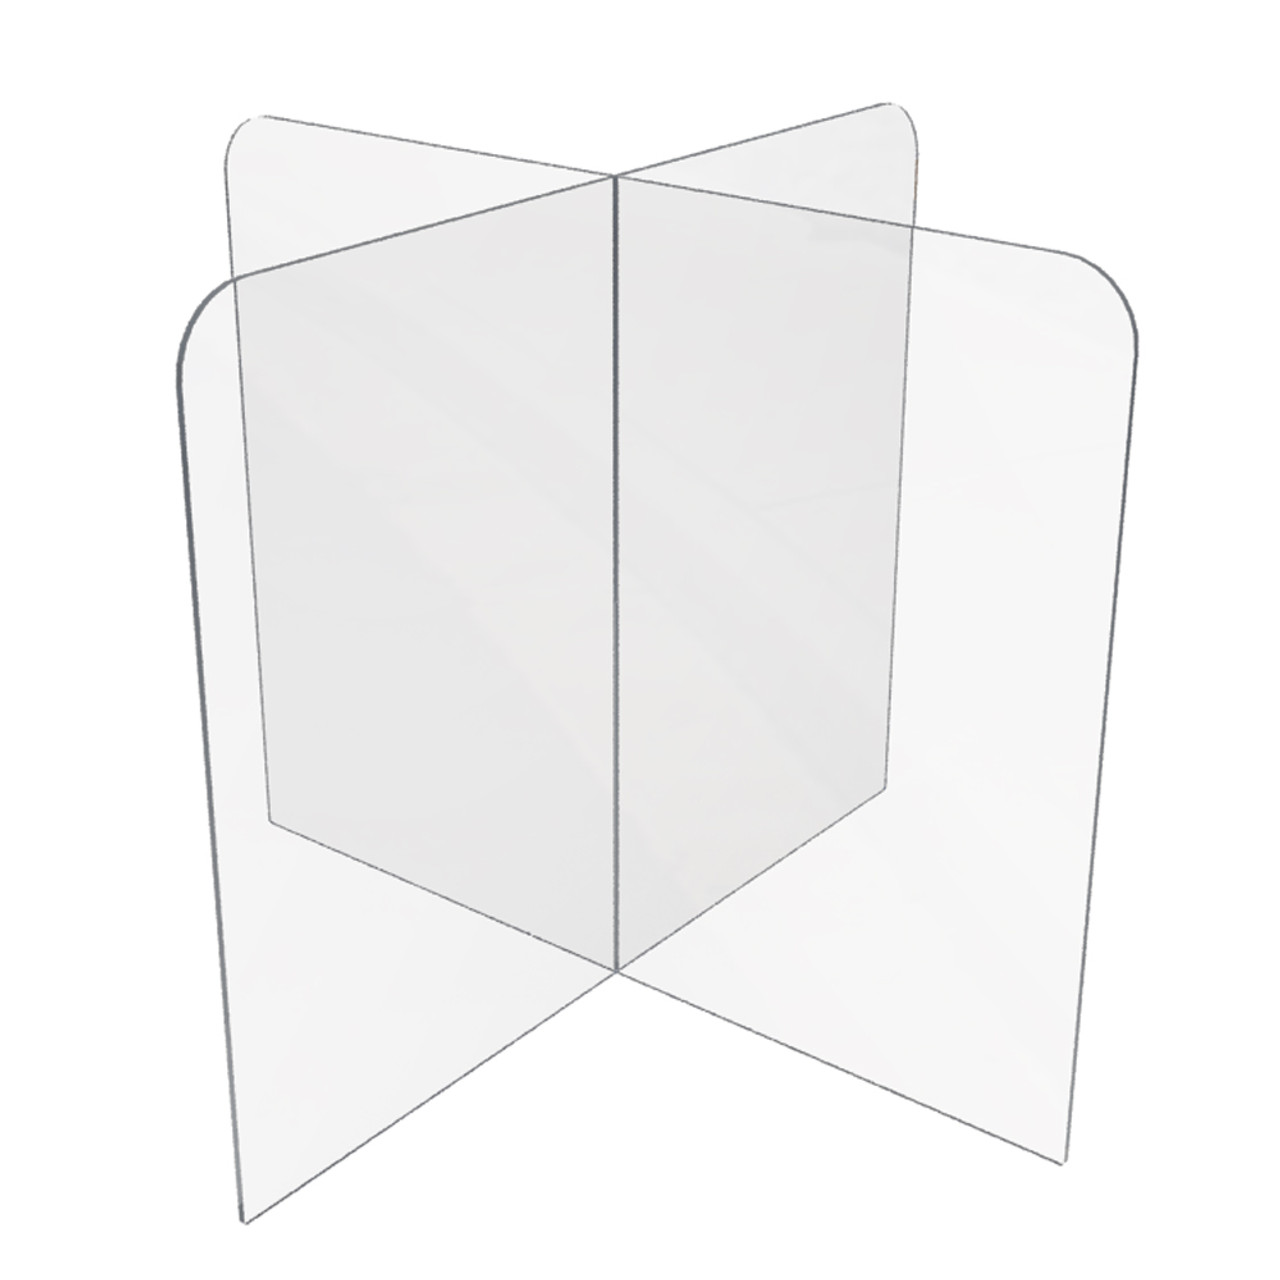 DAGCOT Floor Standing Sneeze Guard//Room Divider Portable Divider Partition,,Plastic Sneeze Guard for Ground with Oxford Cloth Bag Isolation Shields Reception Screen Transparent Protective Shield